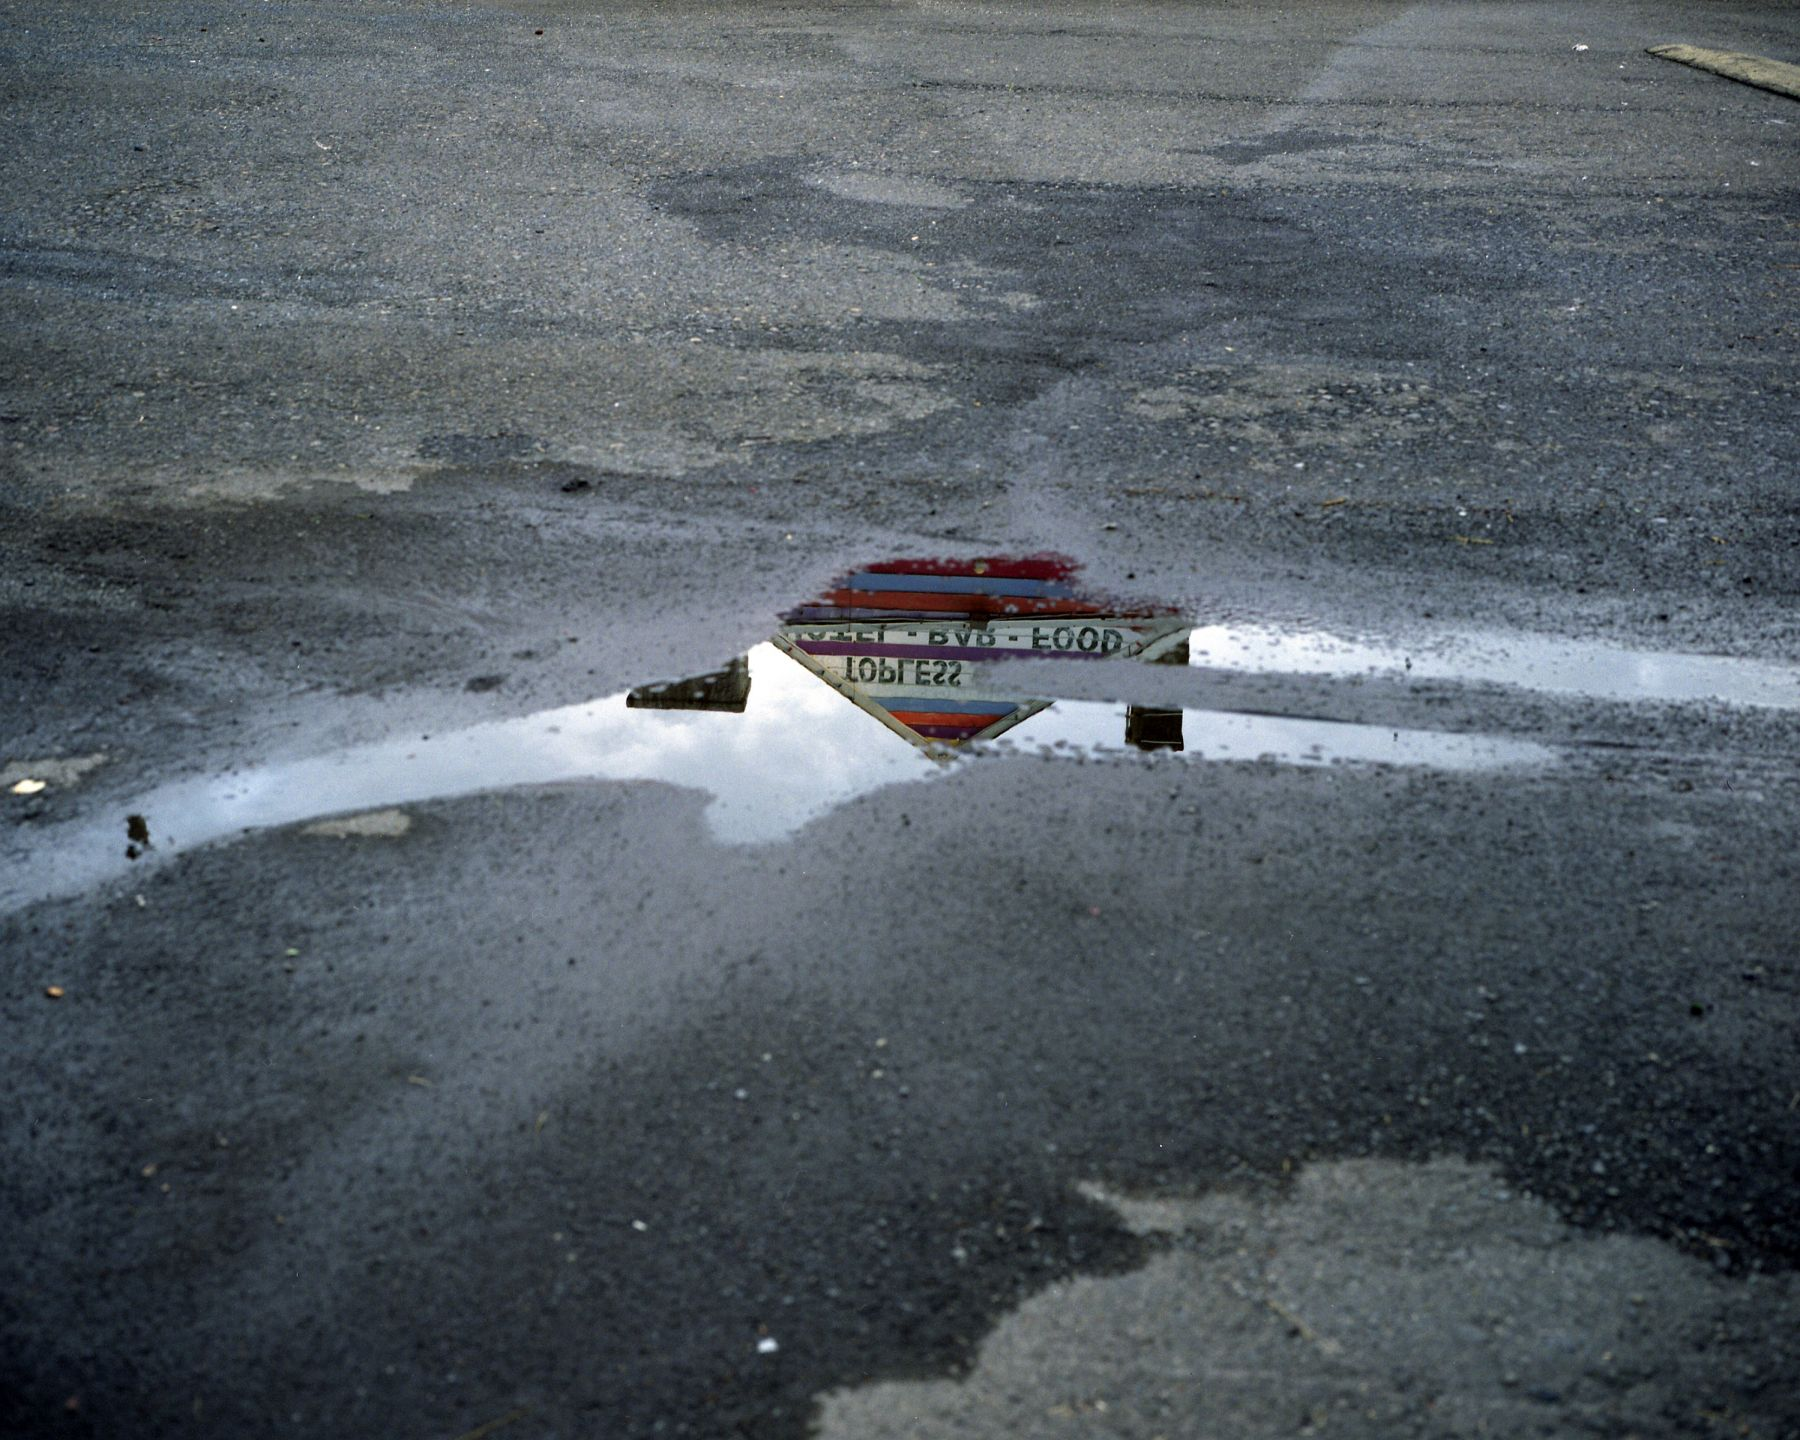 Topless bar reflected in puddle, Doylestown, Pennsylvania, 2010. Archival pigment print, 30 x 40 inches.